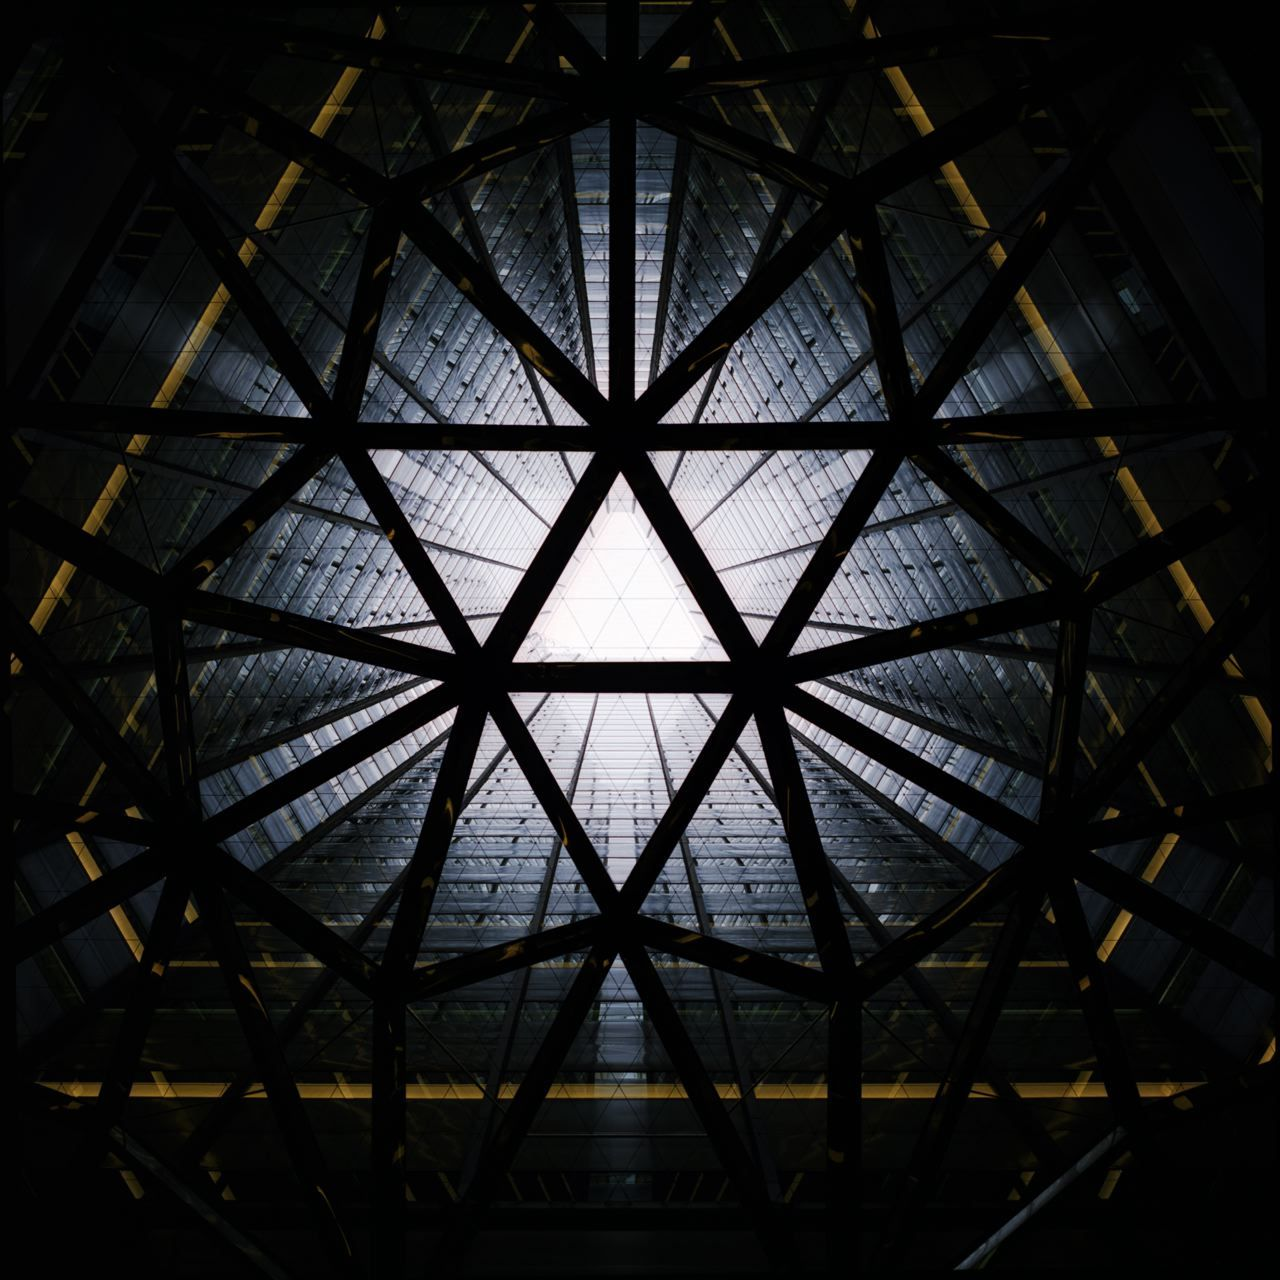 Kaleidoscope (HASSELBLAD 500C/M) | Flickr - Photo Sharing!